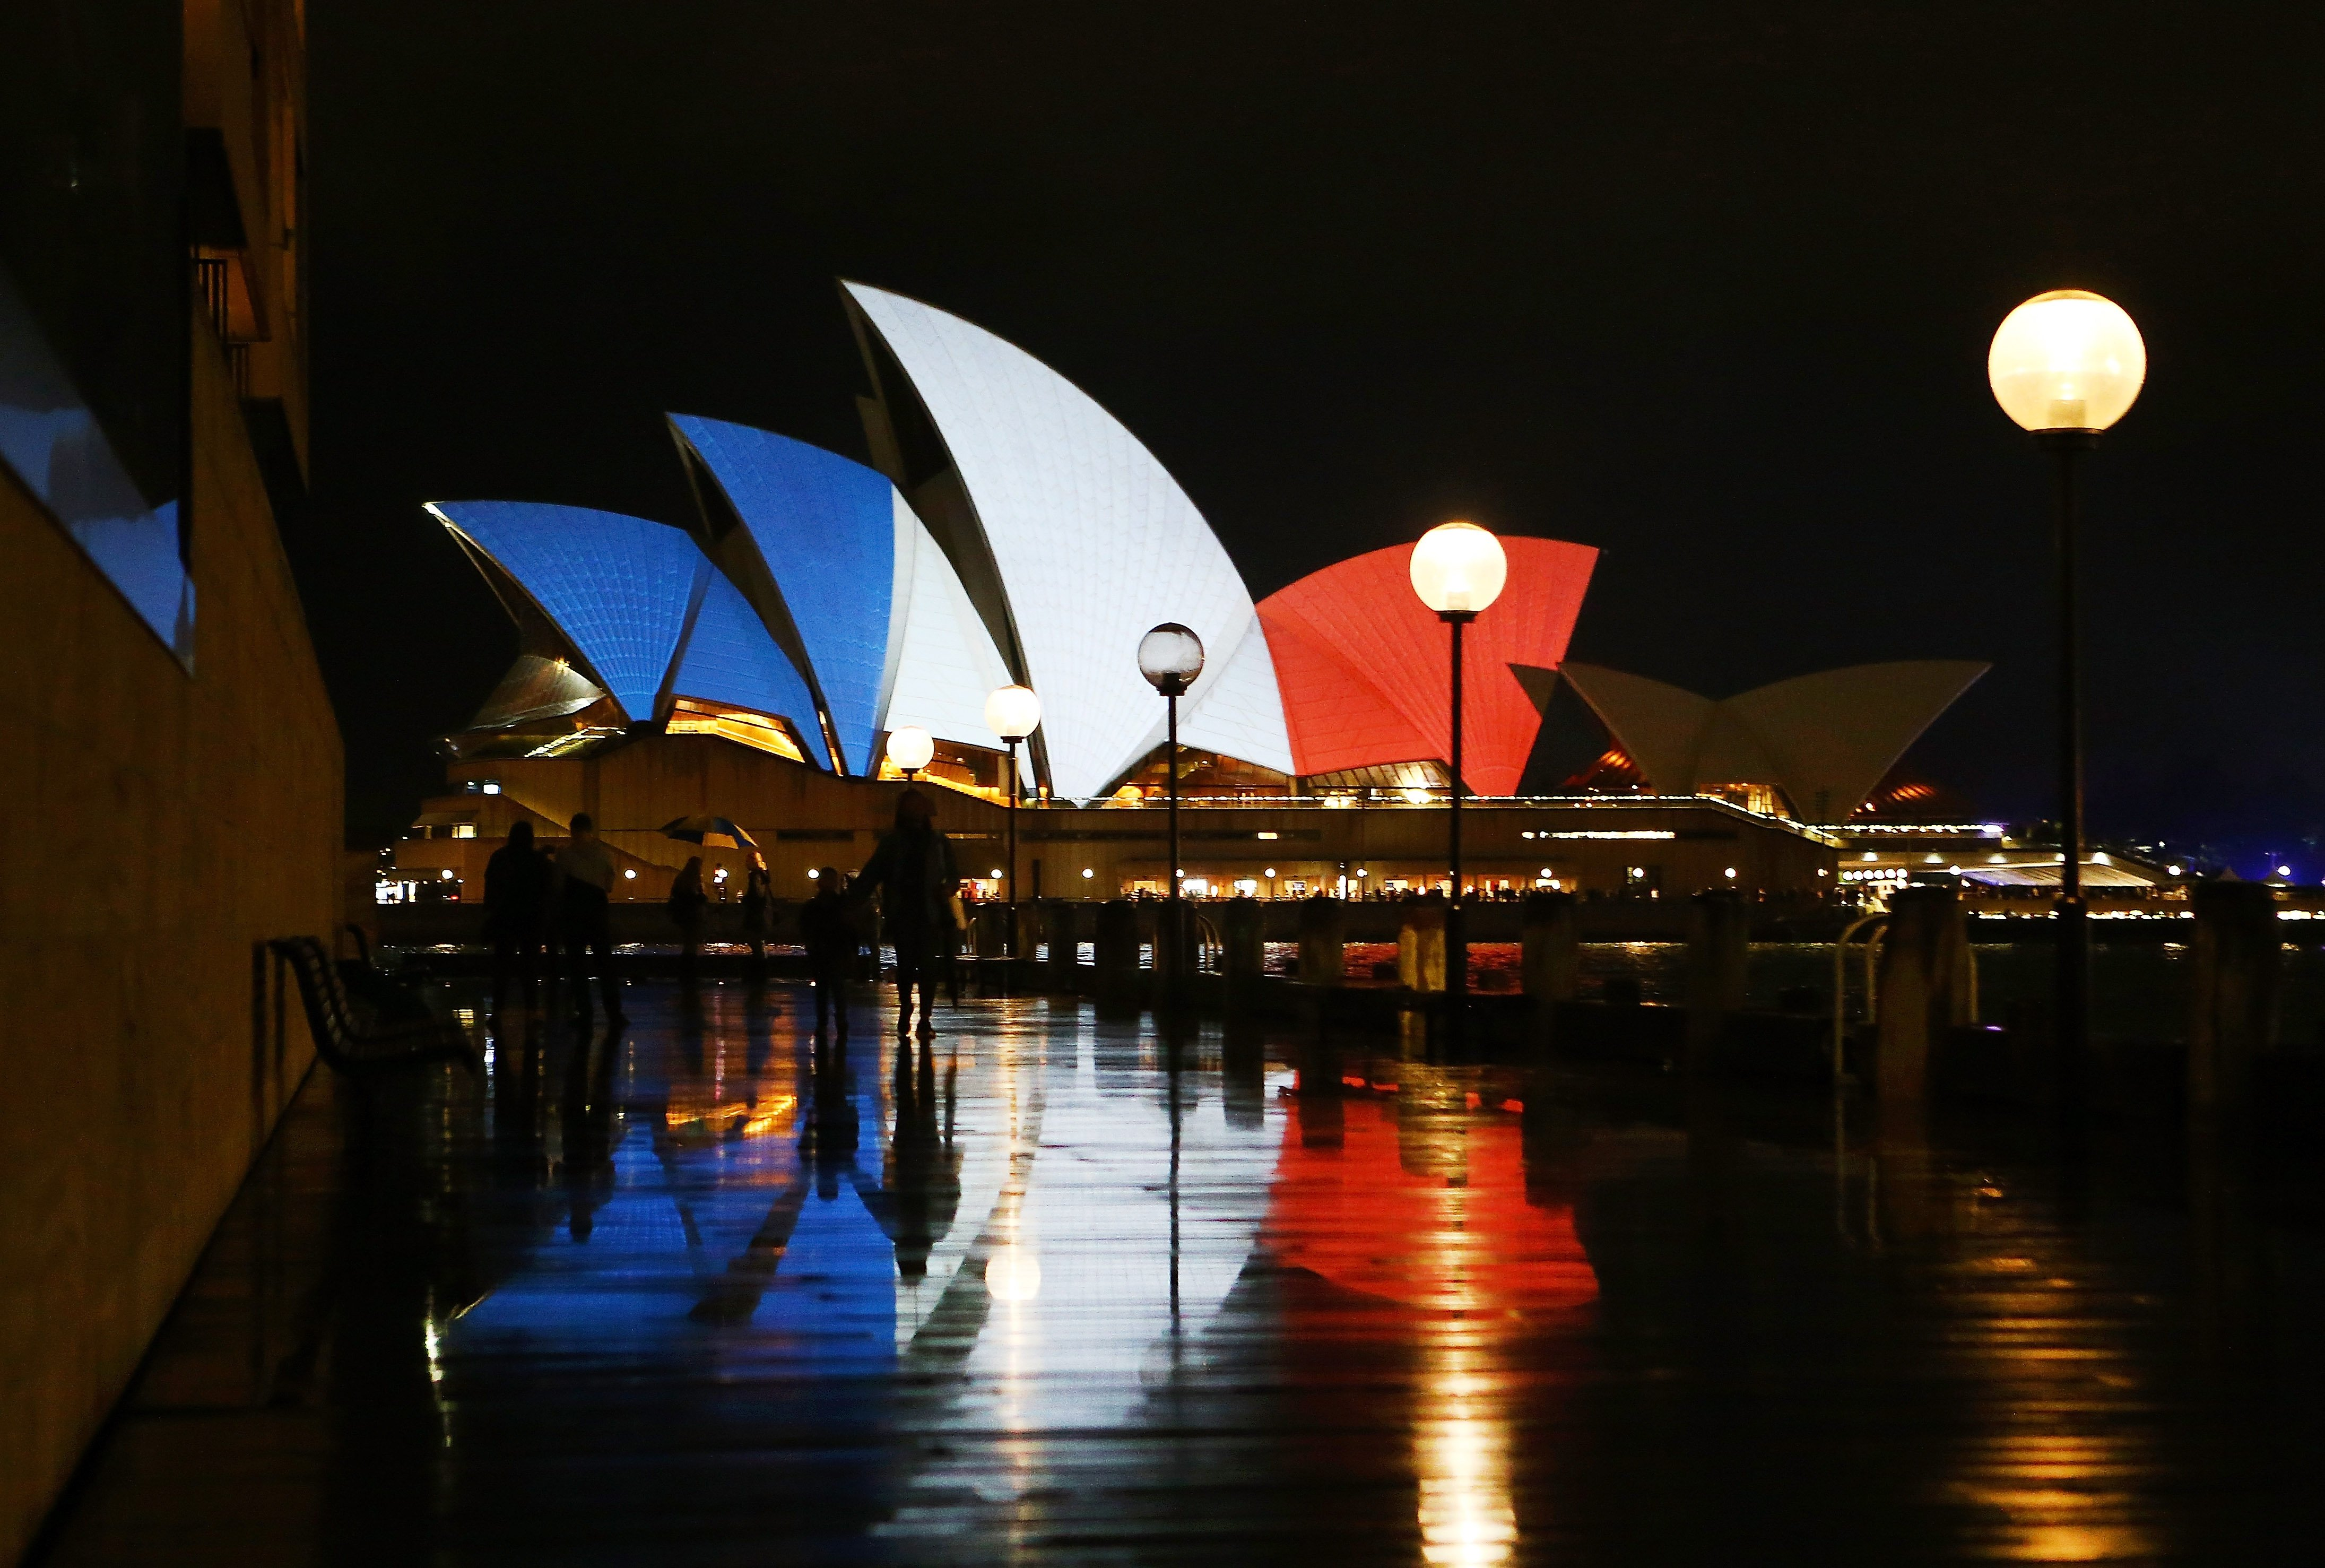 Pedestrians walk in front of the Sydney Opera House as its sails are illuminated in the colors of the French flag in Sydney, Australia on Nov. 14, 2015.